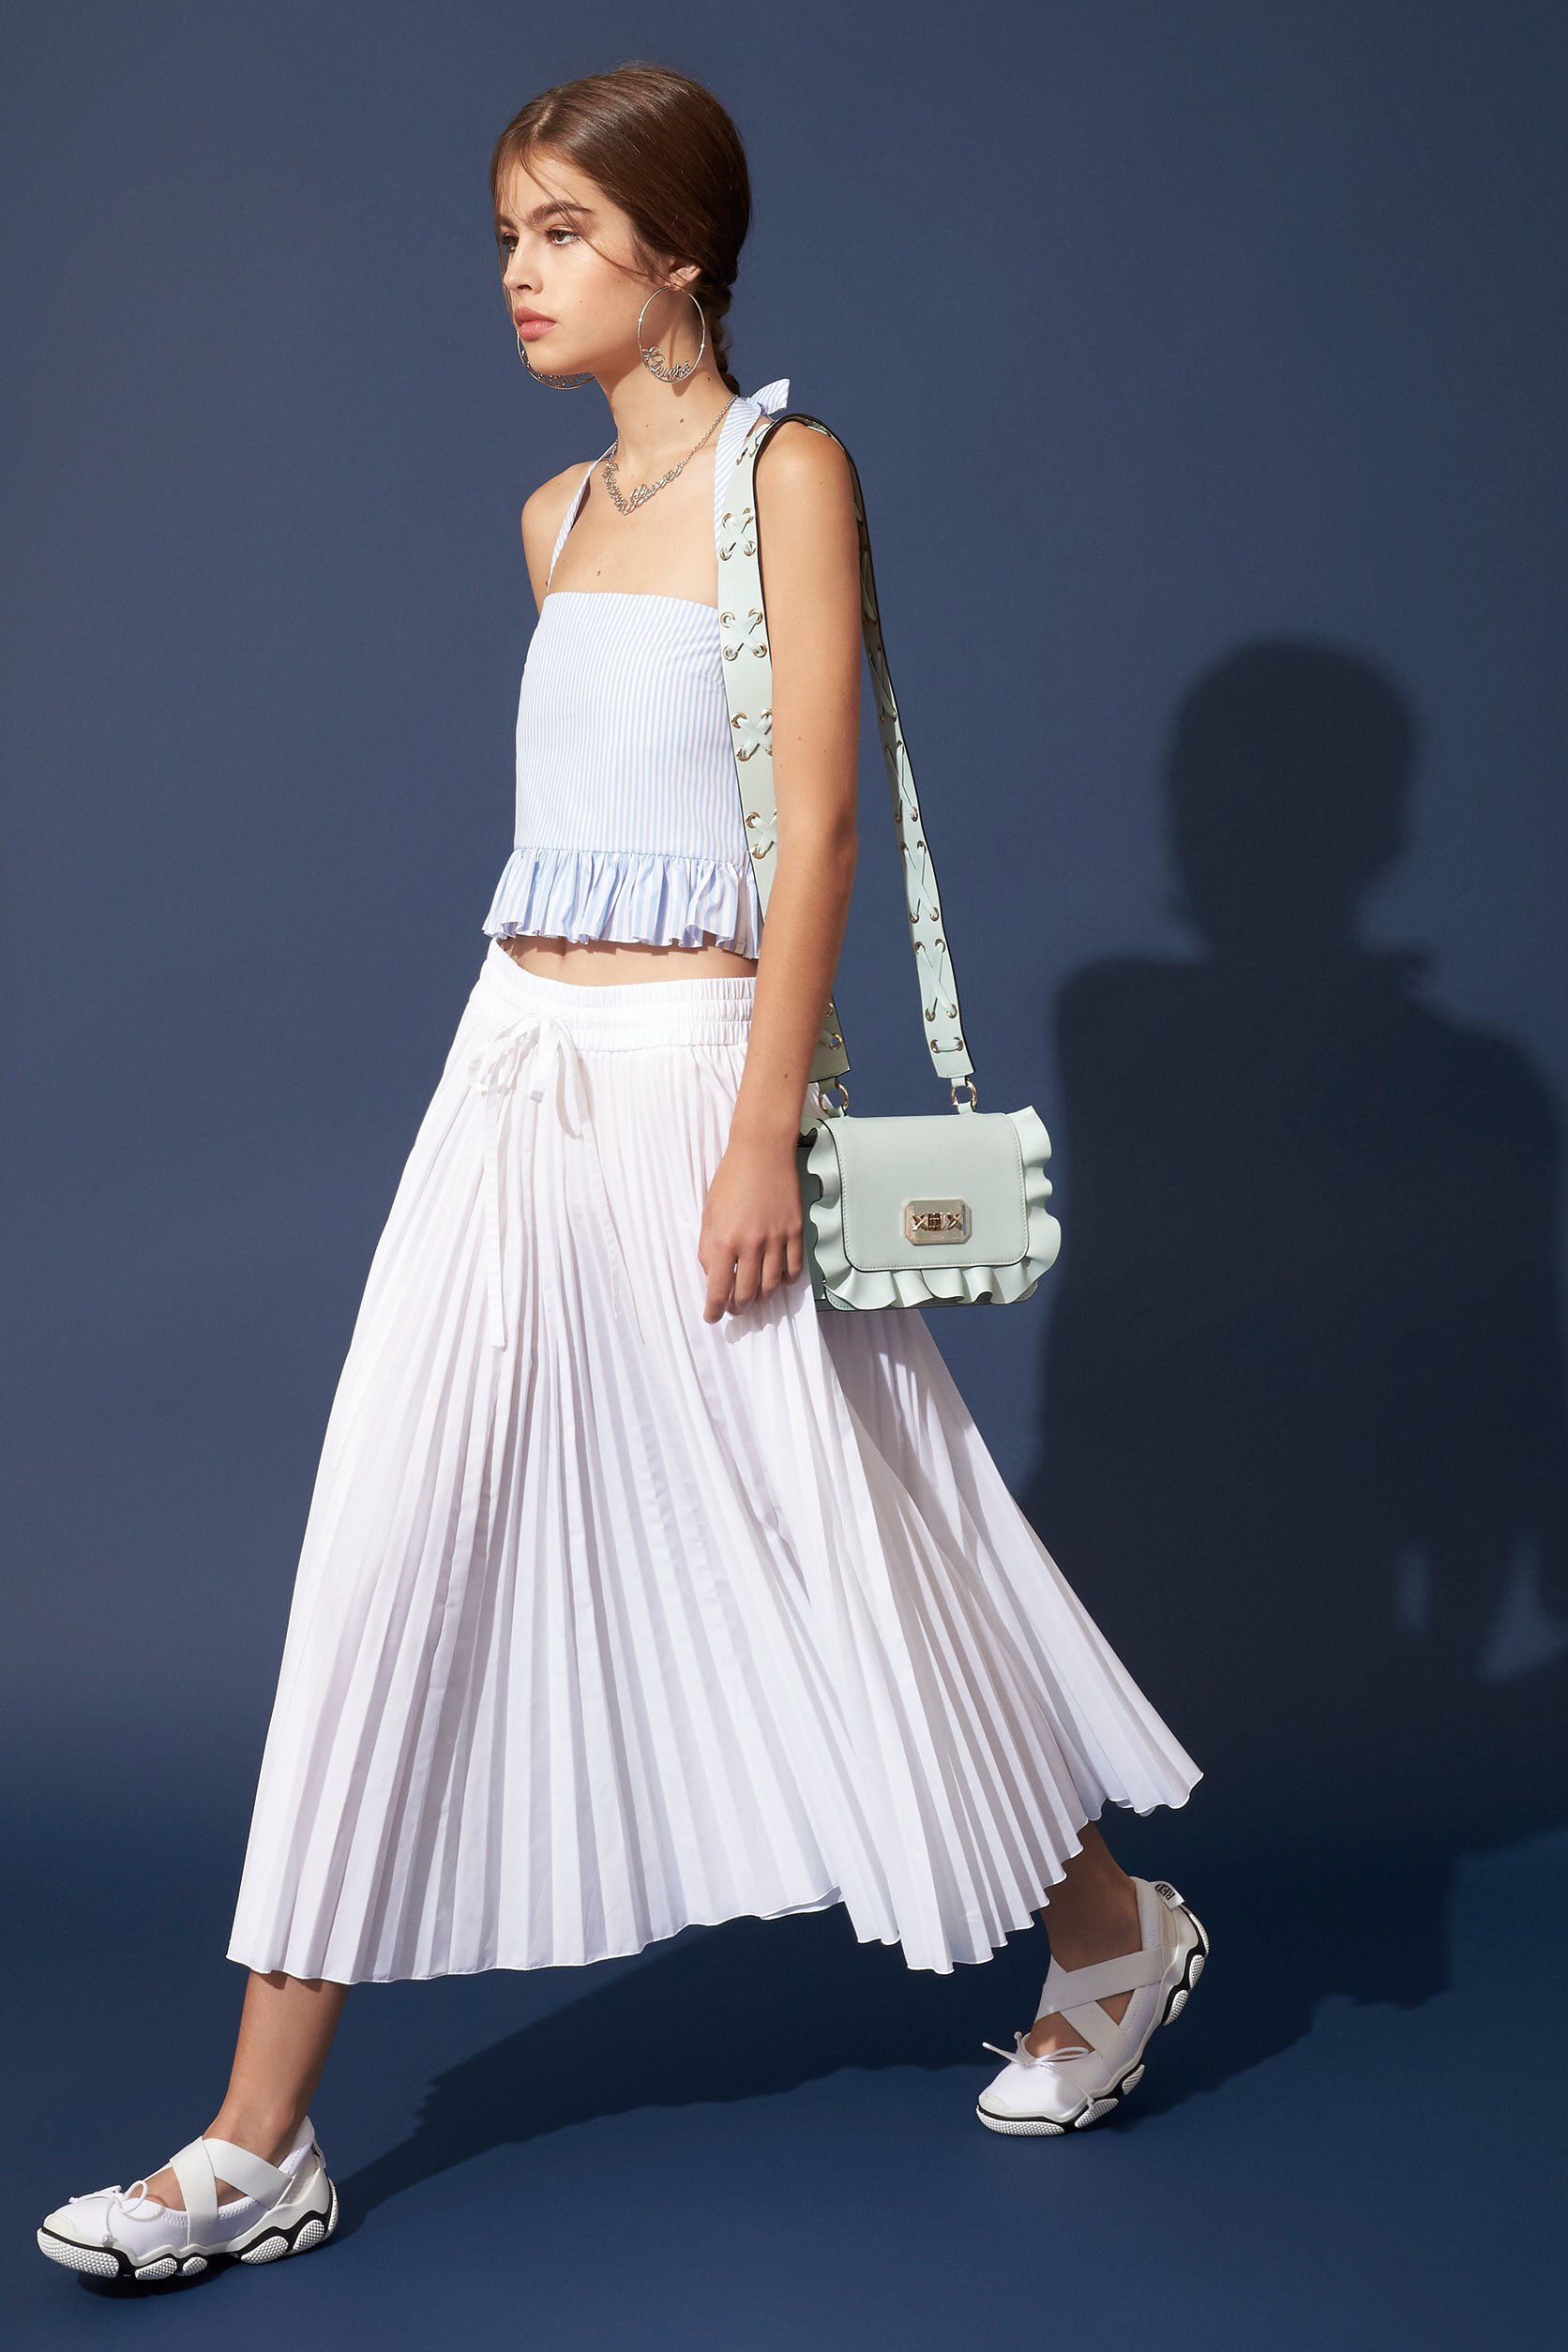 RED Valentino SpringSummer 2019 Collection – NYFW pics